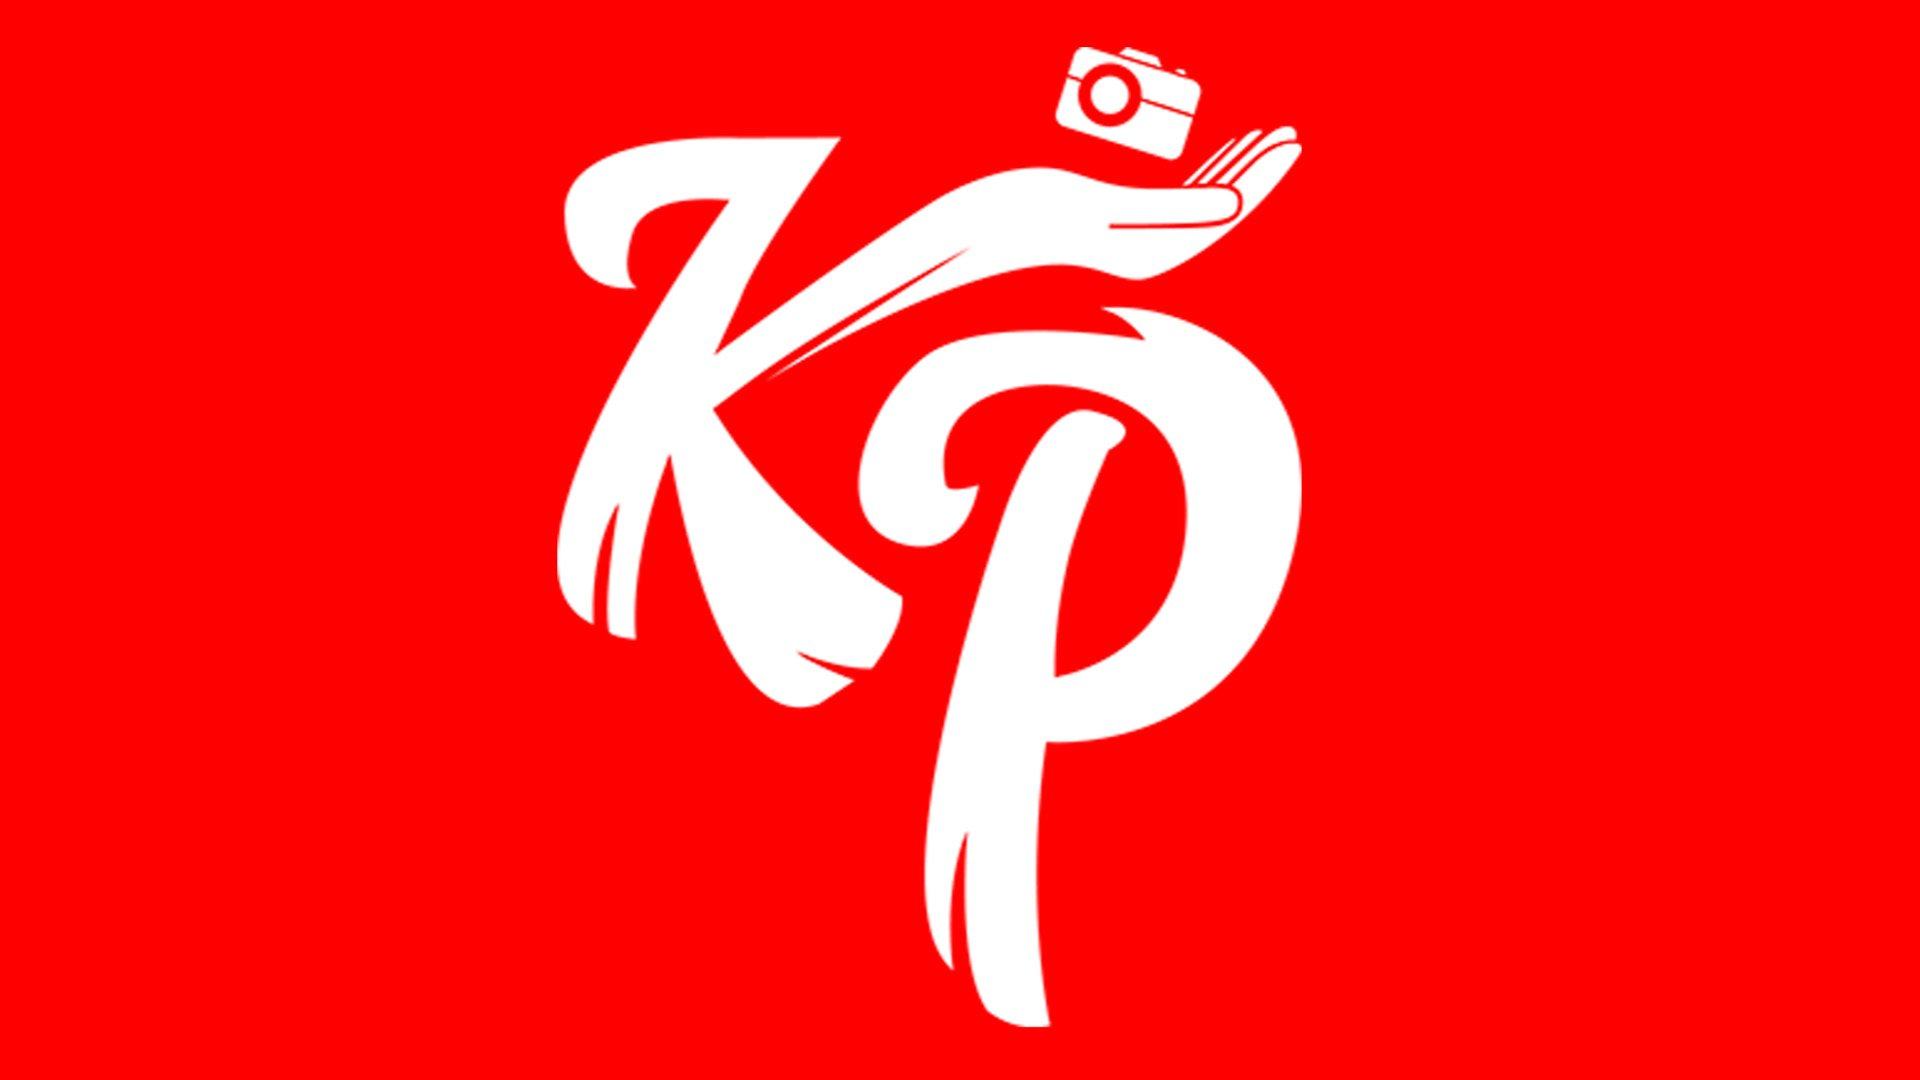 knolpower logo knolpower symbol meaning history and